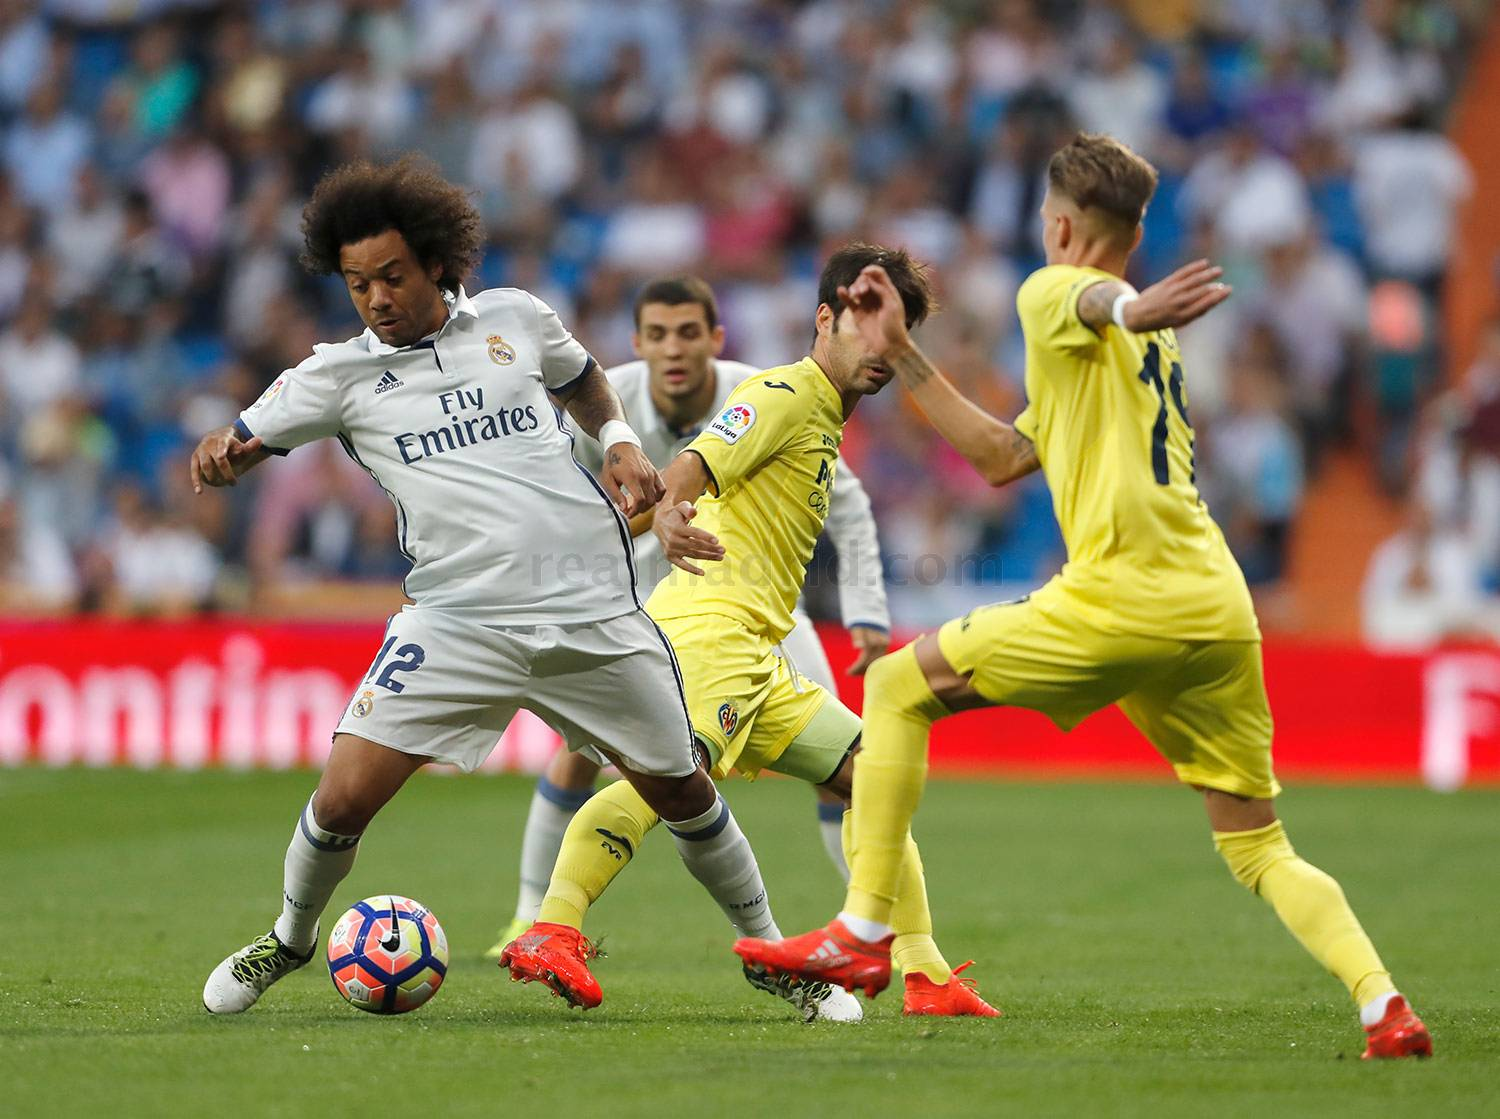 Real Madrid - Villarreal